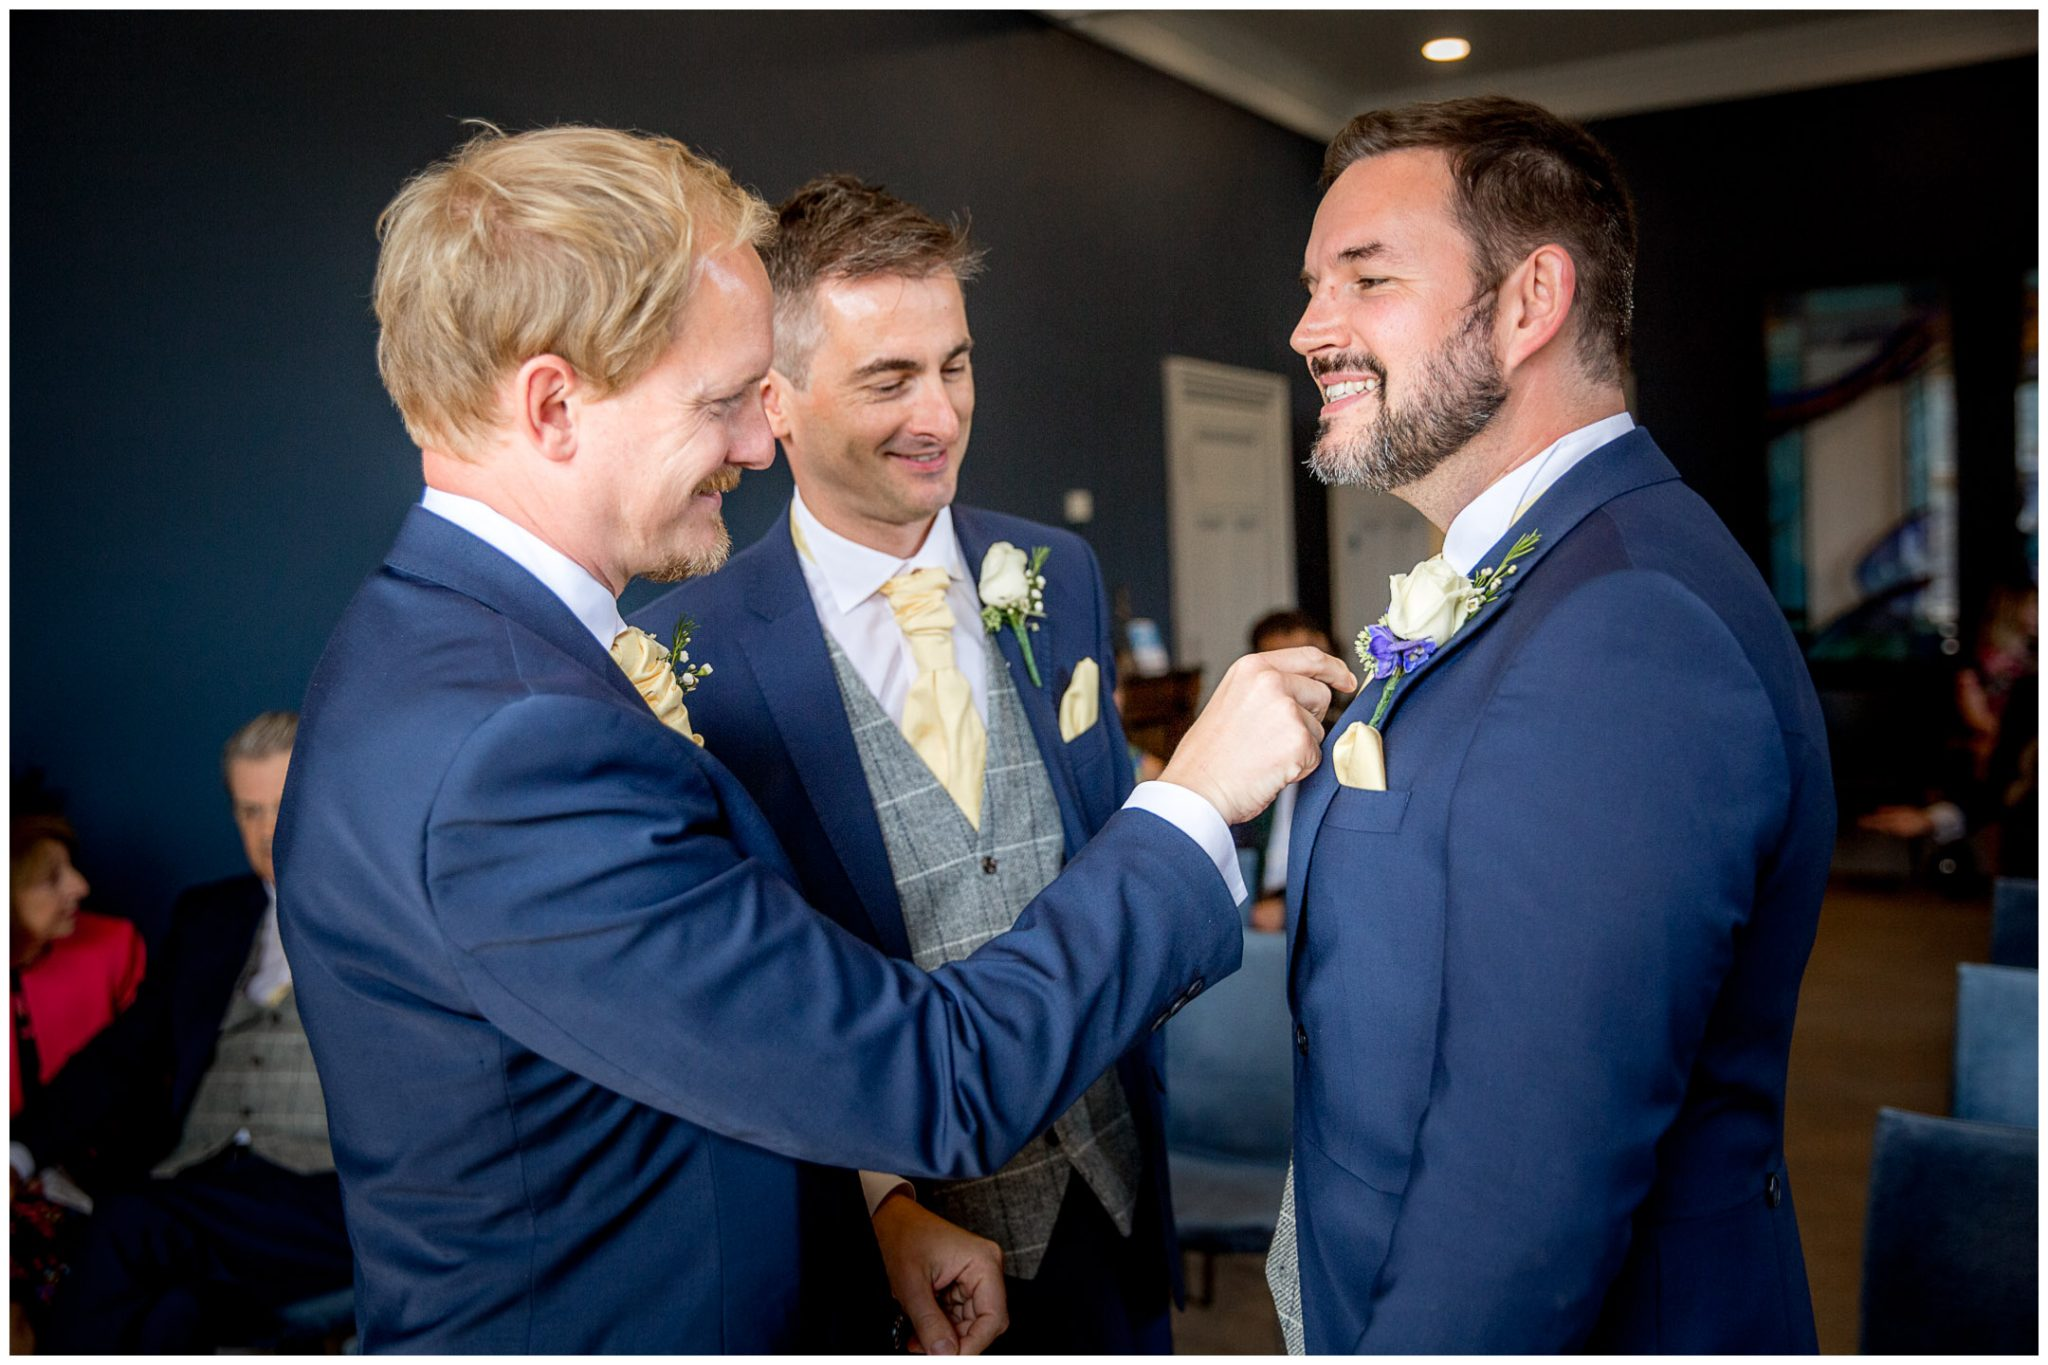 Groomsmen make final adjustments to the groom's tie before the ceremony